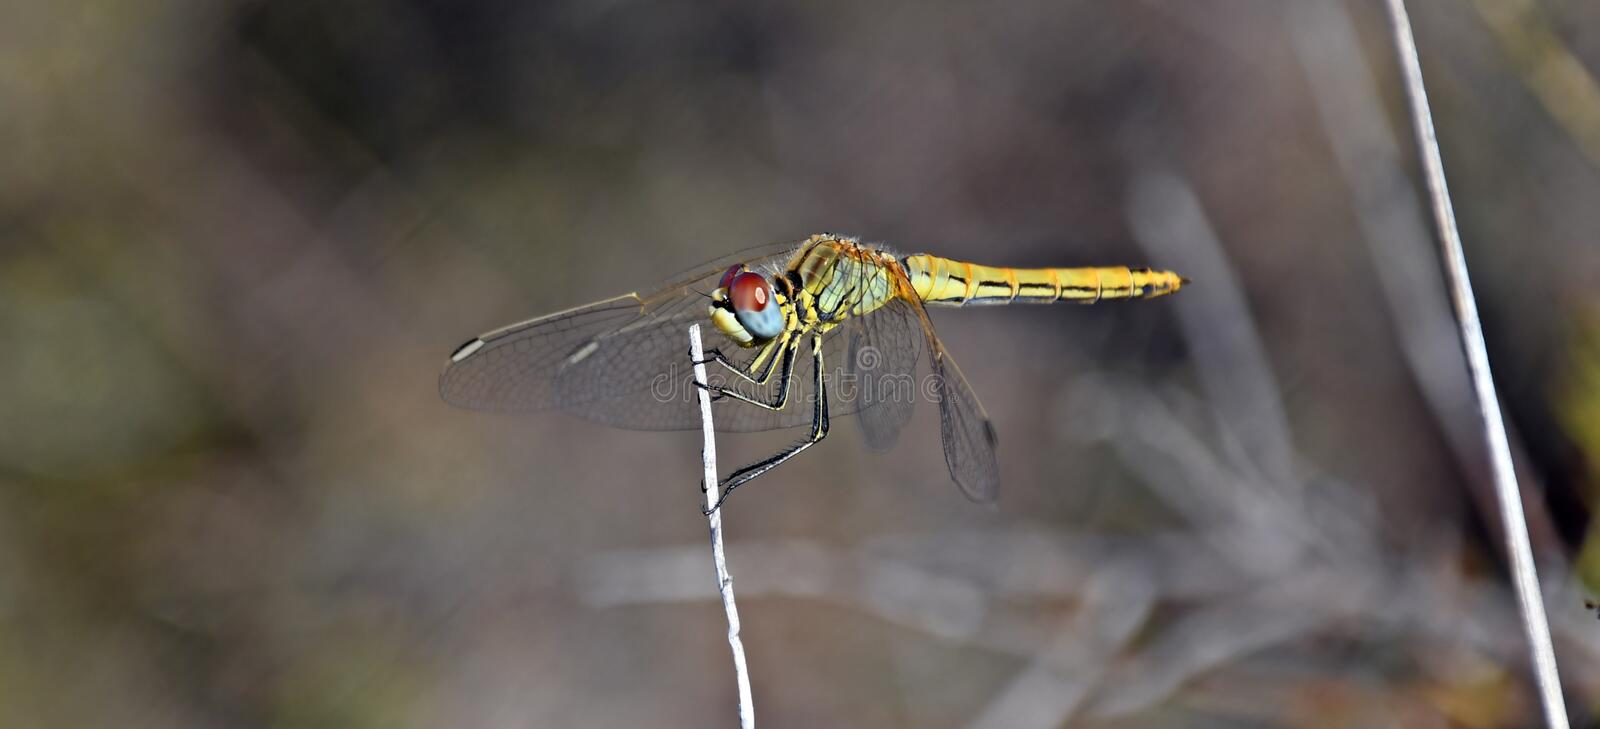 Brown blurred background with a colored dragonfly royalty free stock image